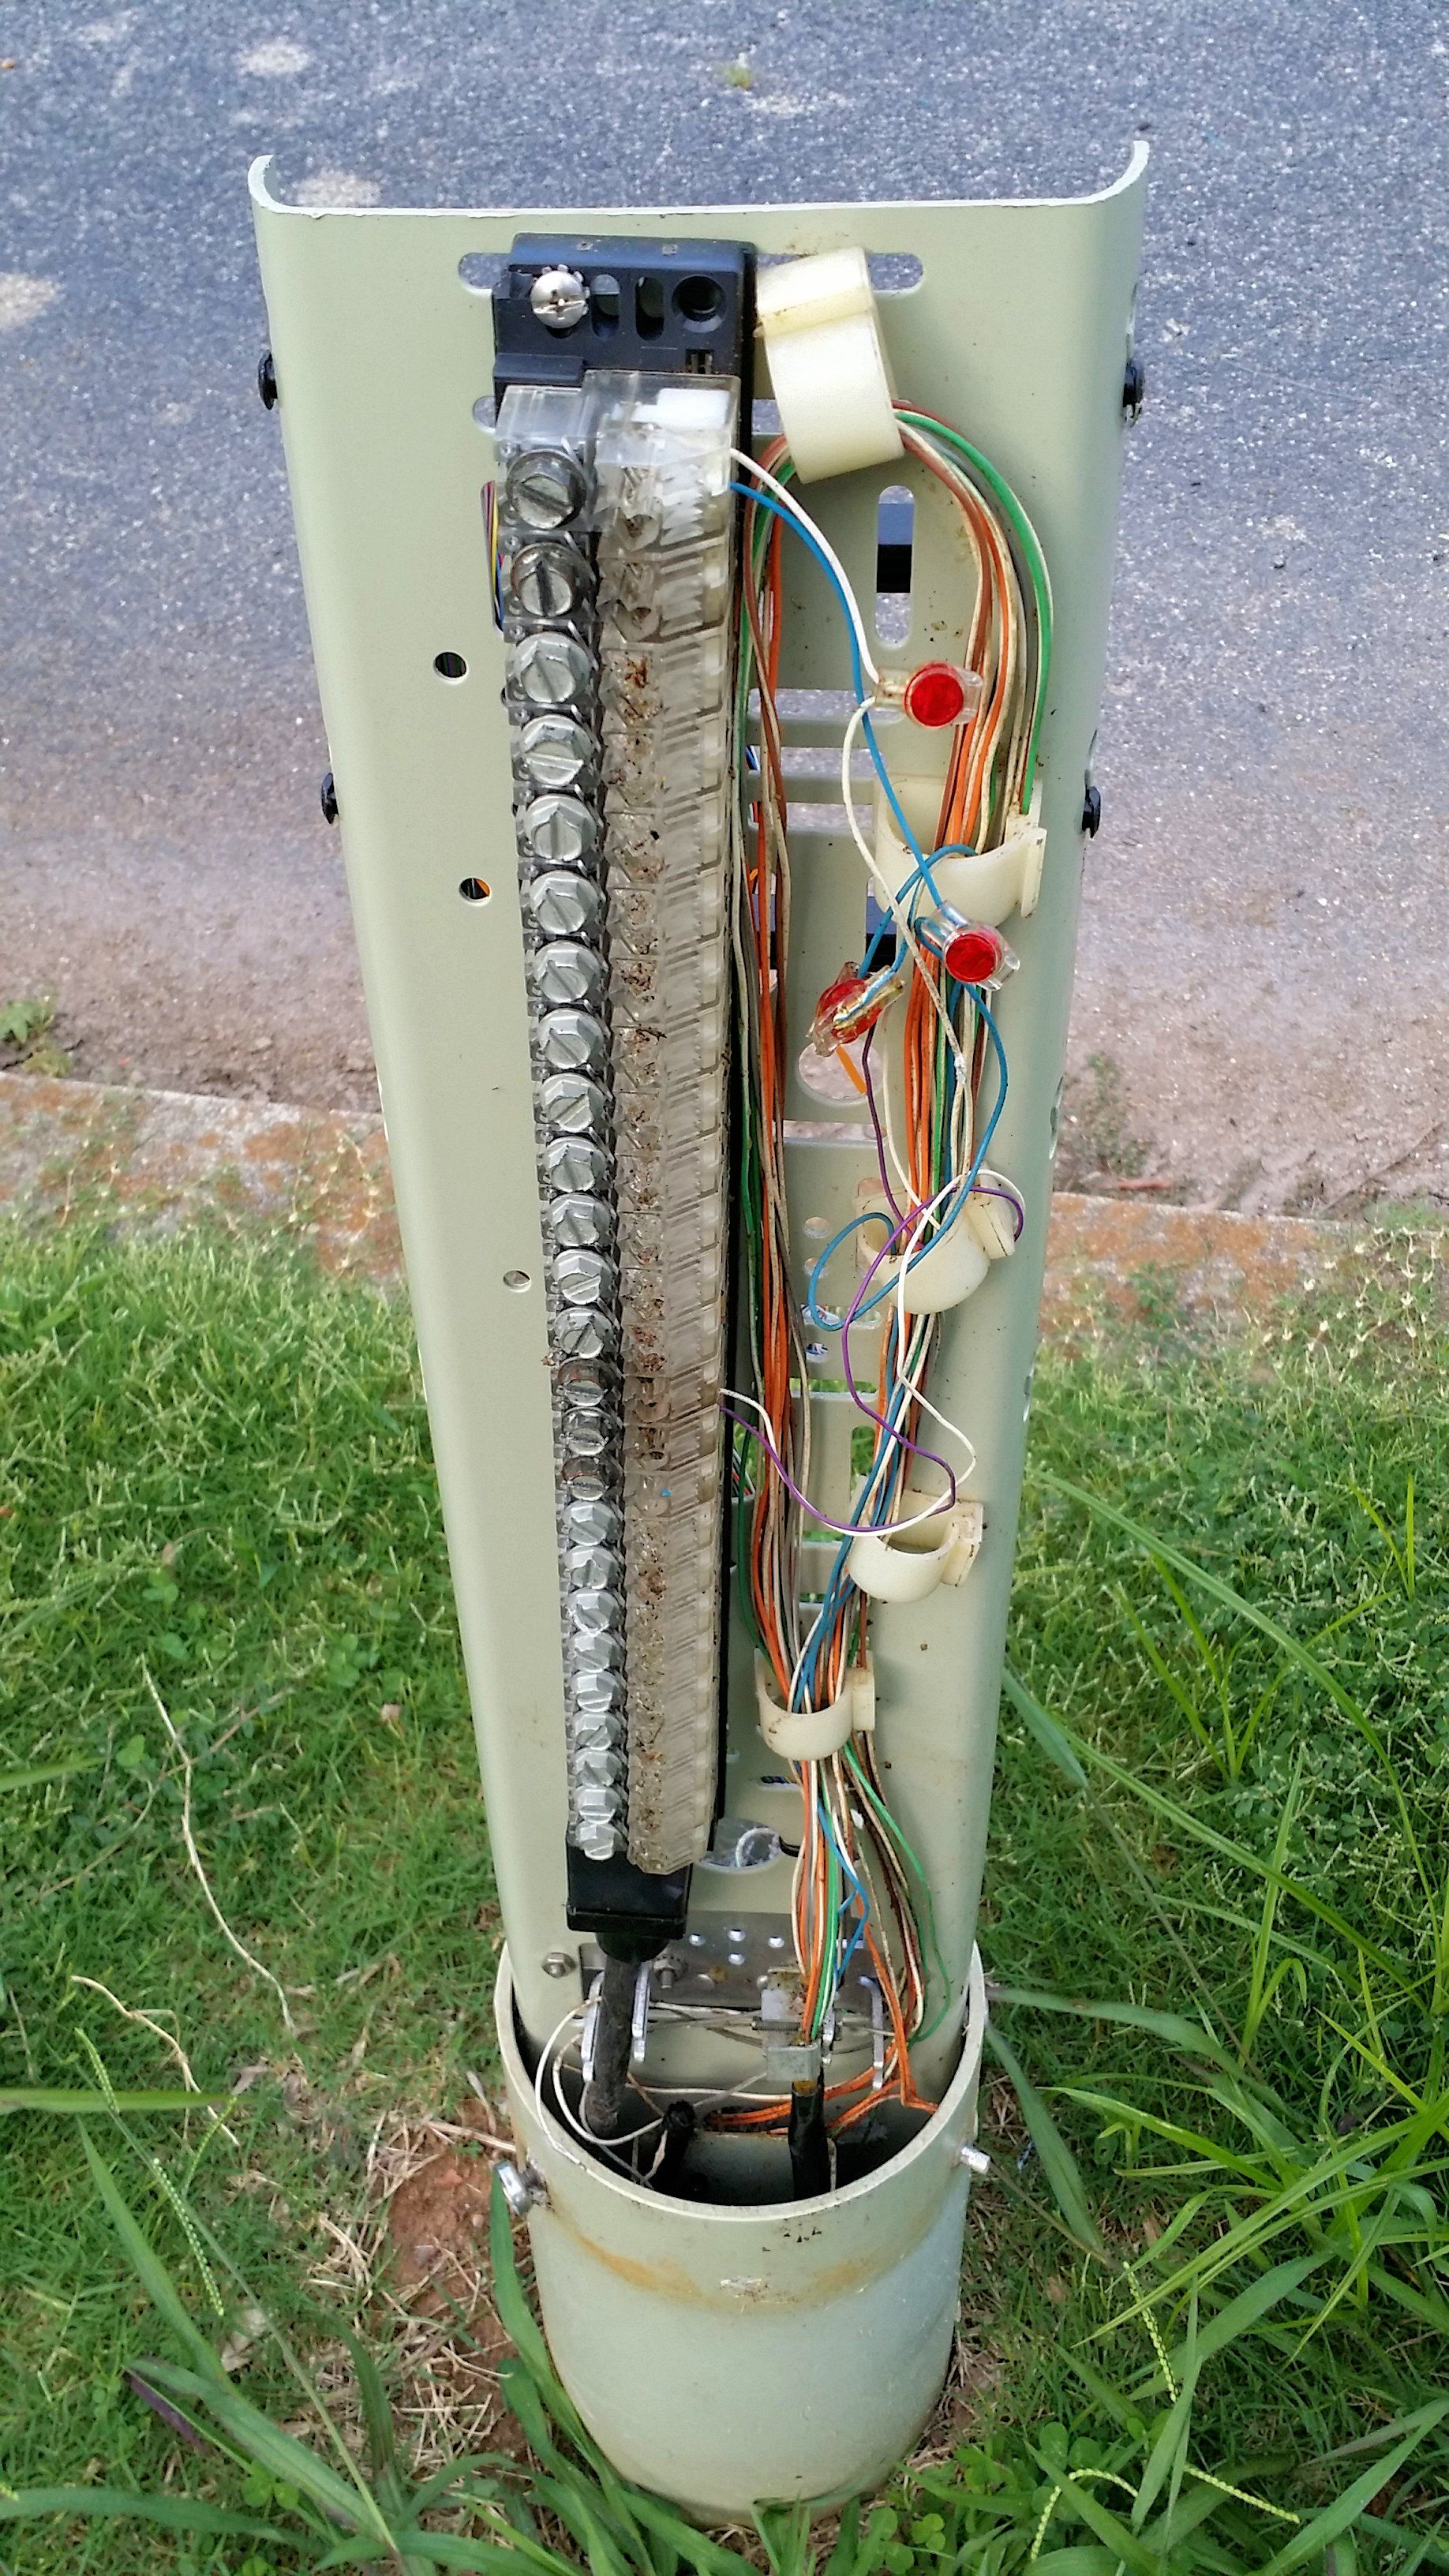 telephone wiring cover wiring diagram mega buried cable serving terminal st with cover [ 1836 x 3264 Pixel ]